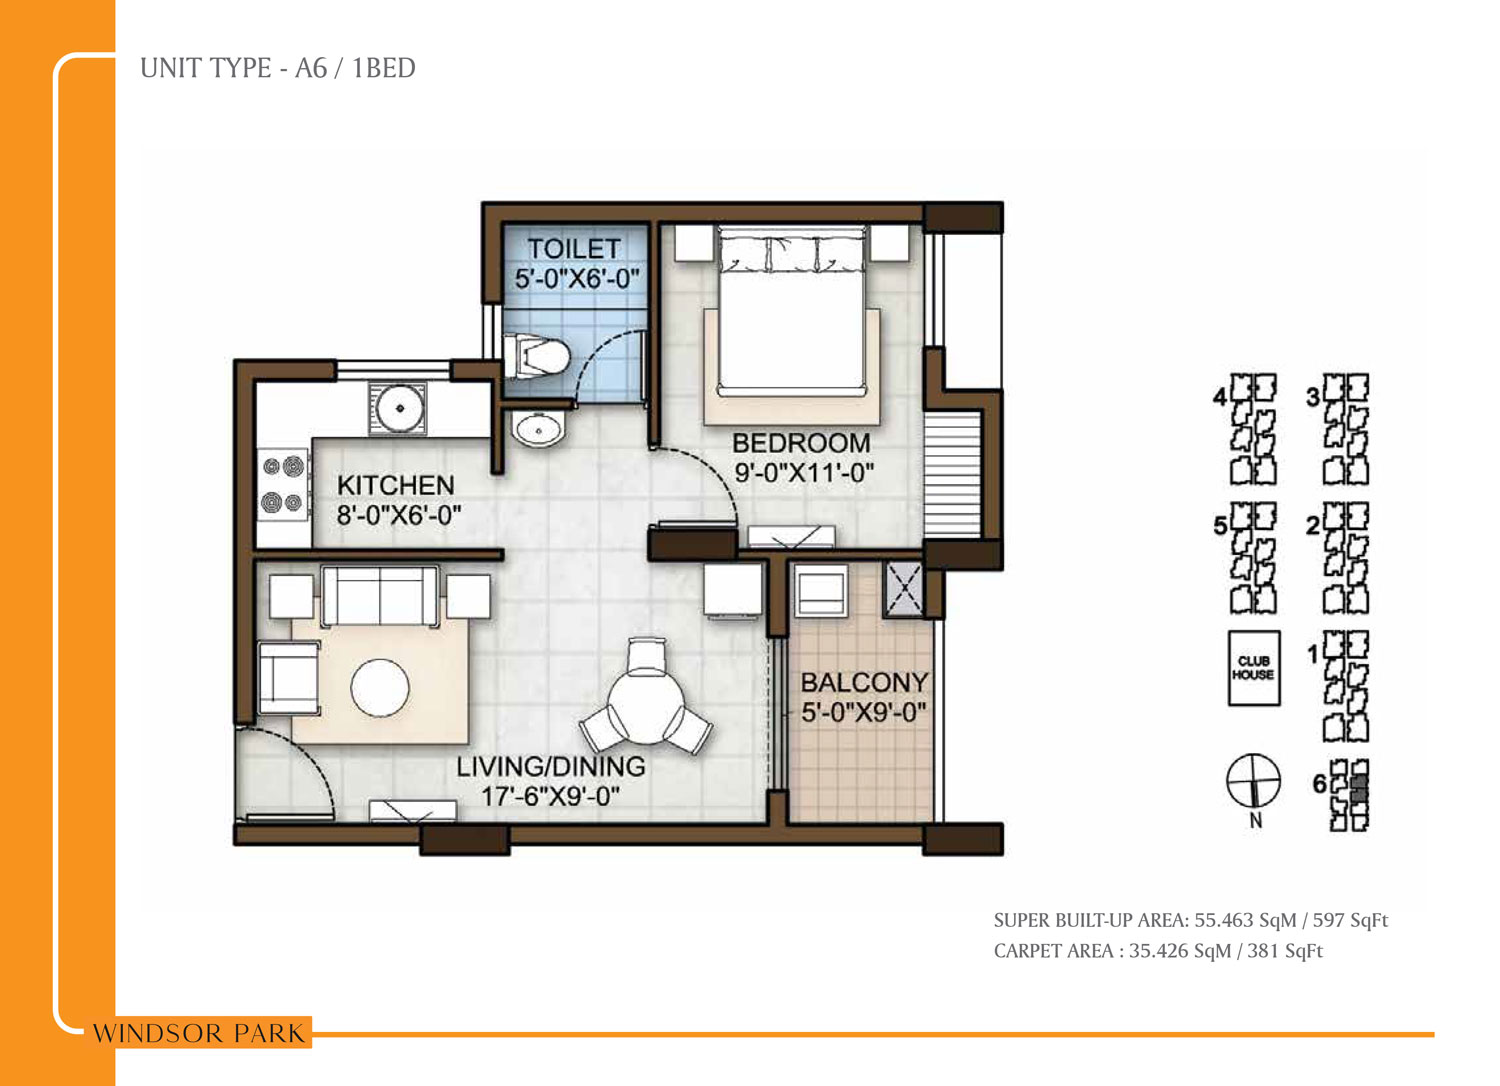 Type A6 - 597 Sq Ft